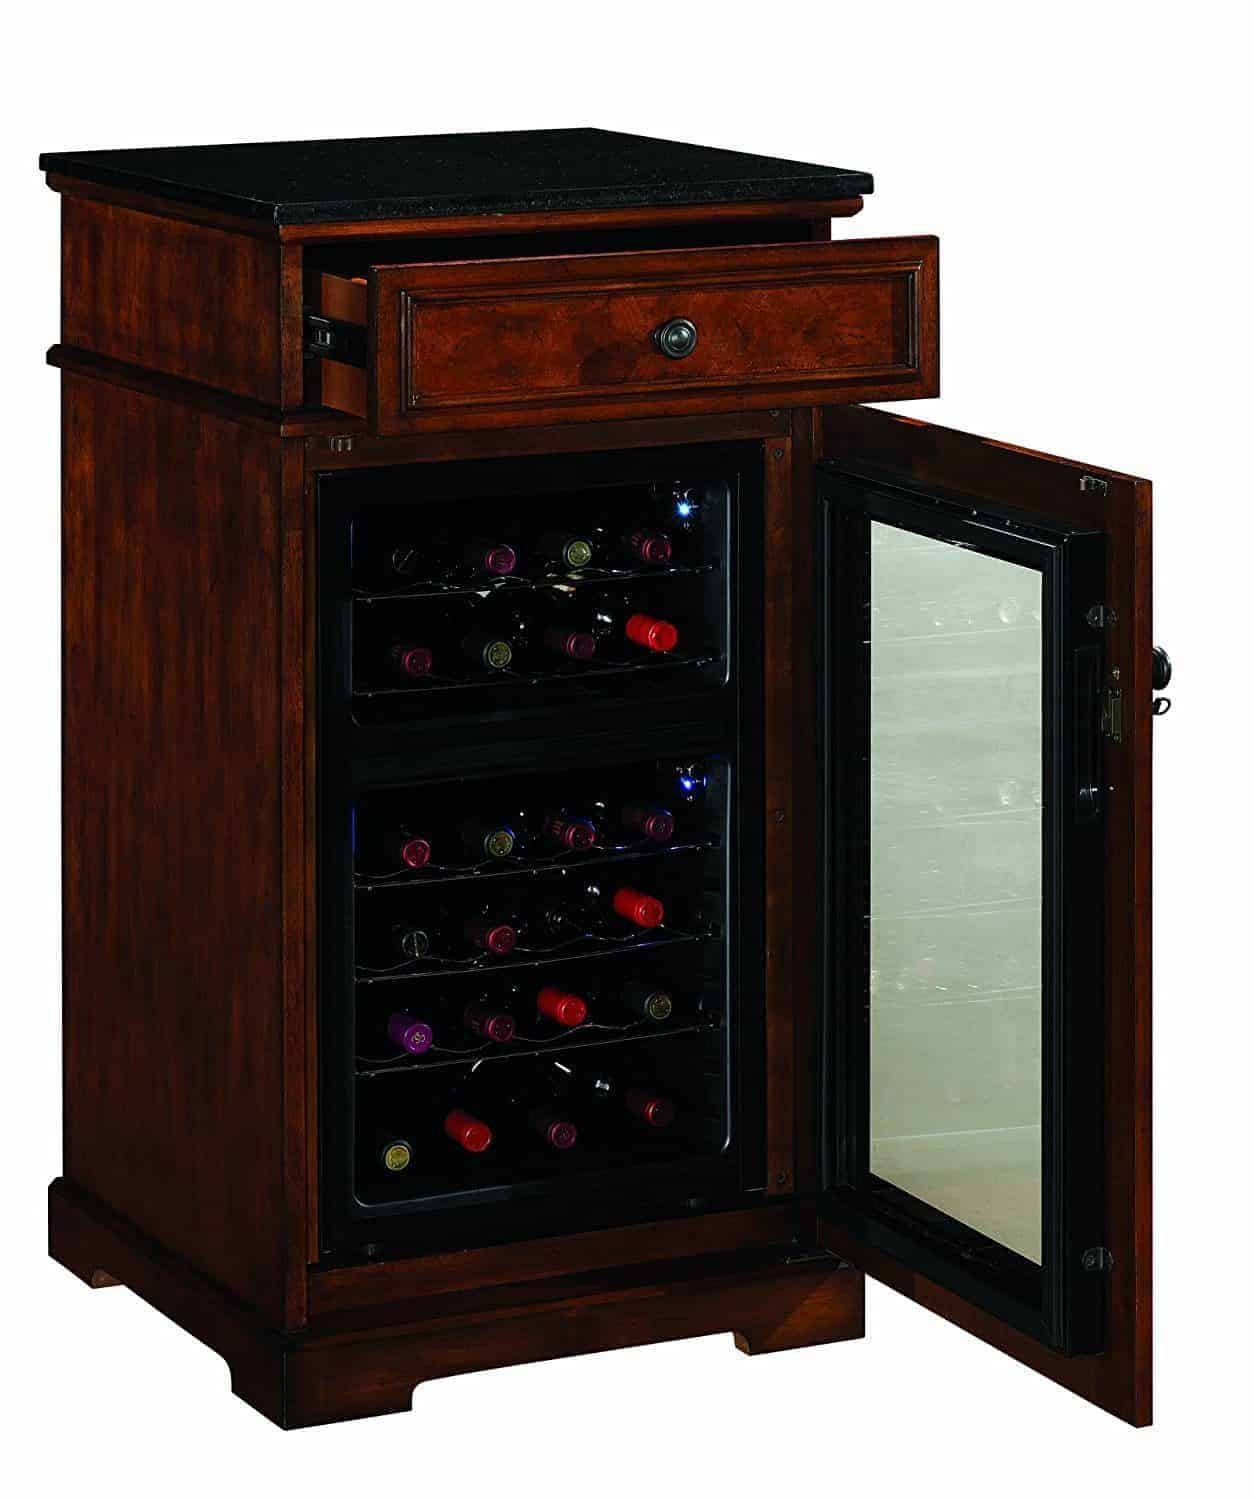 Madison Thermoelectric Wine Coolers in Rose Cherry